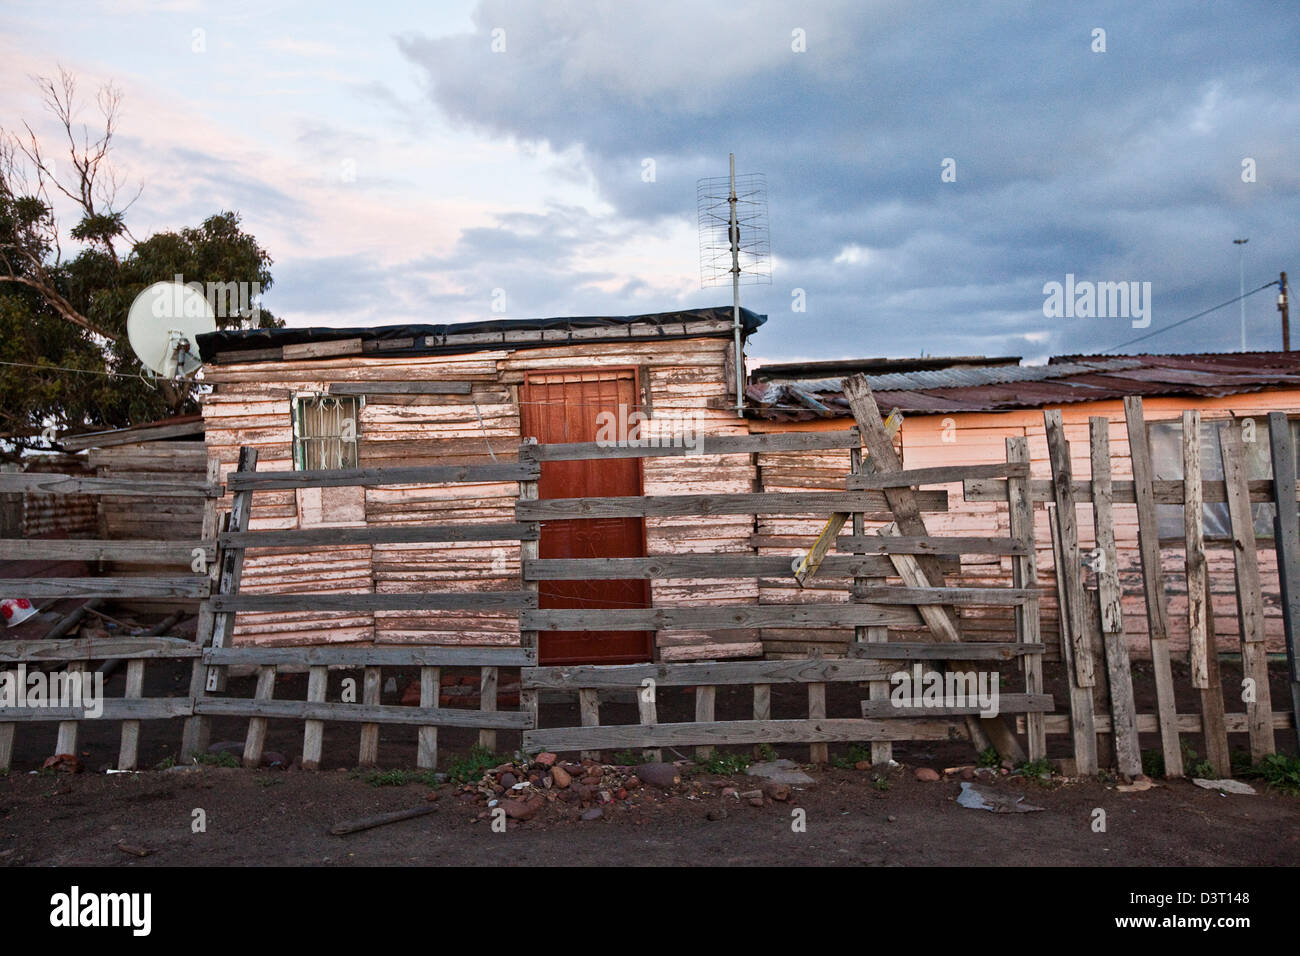 Housing exterior with fence in township, Cape Town, South Africa - Stock Image